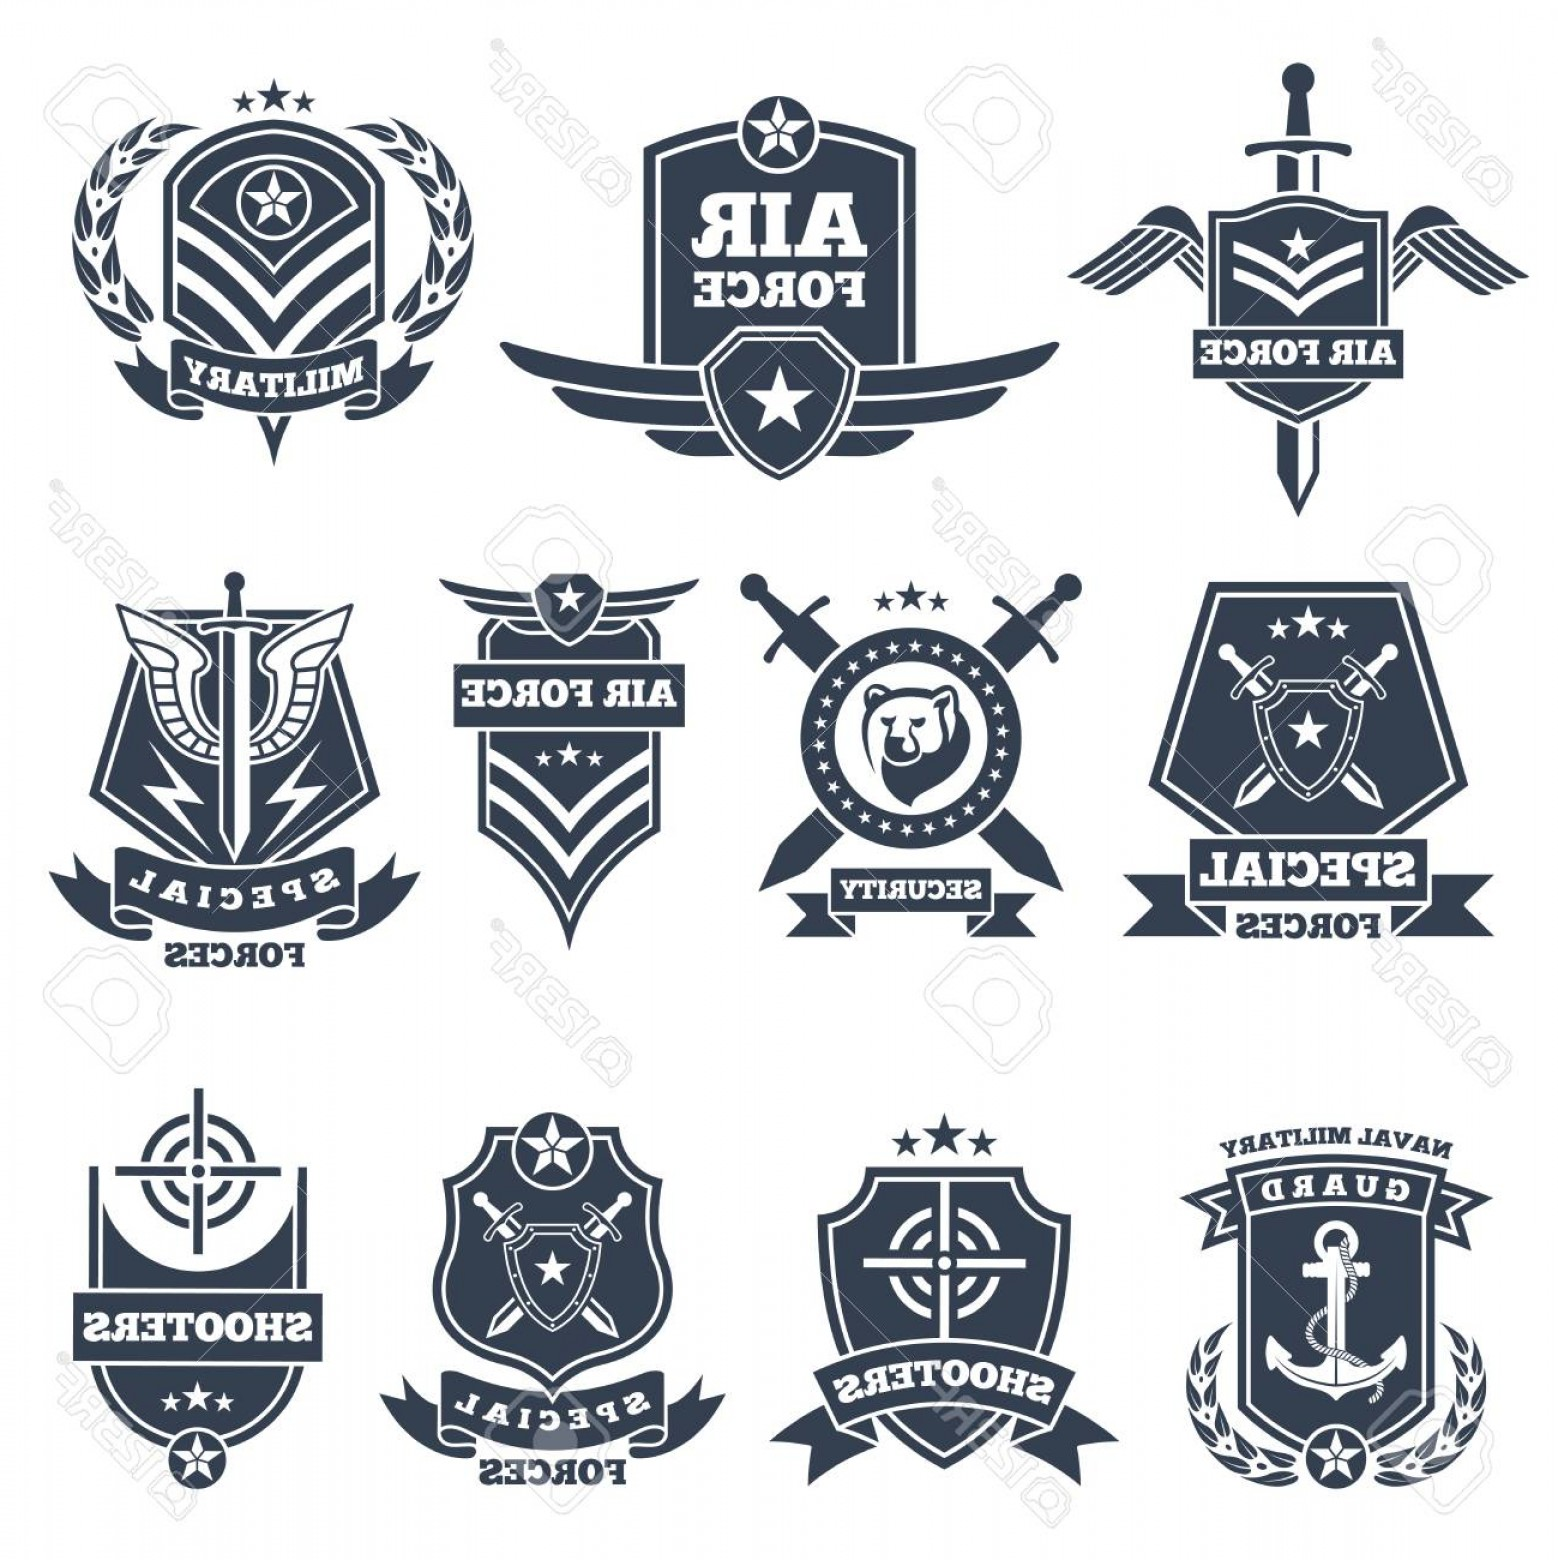 Us Special Forces Vector Files: Photostock Vector Military Logos And Badges Army Symbols Isolated On White Background Military Badge Special Force Avi